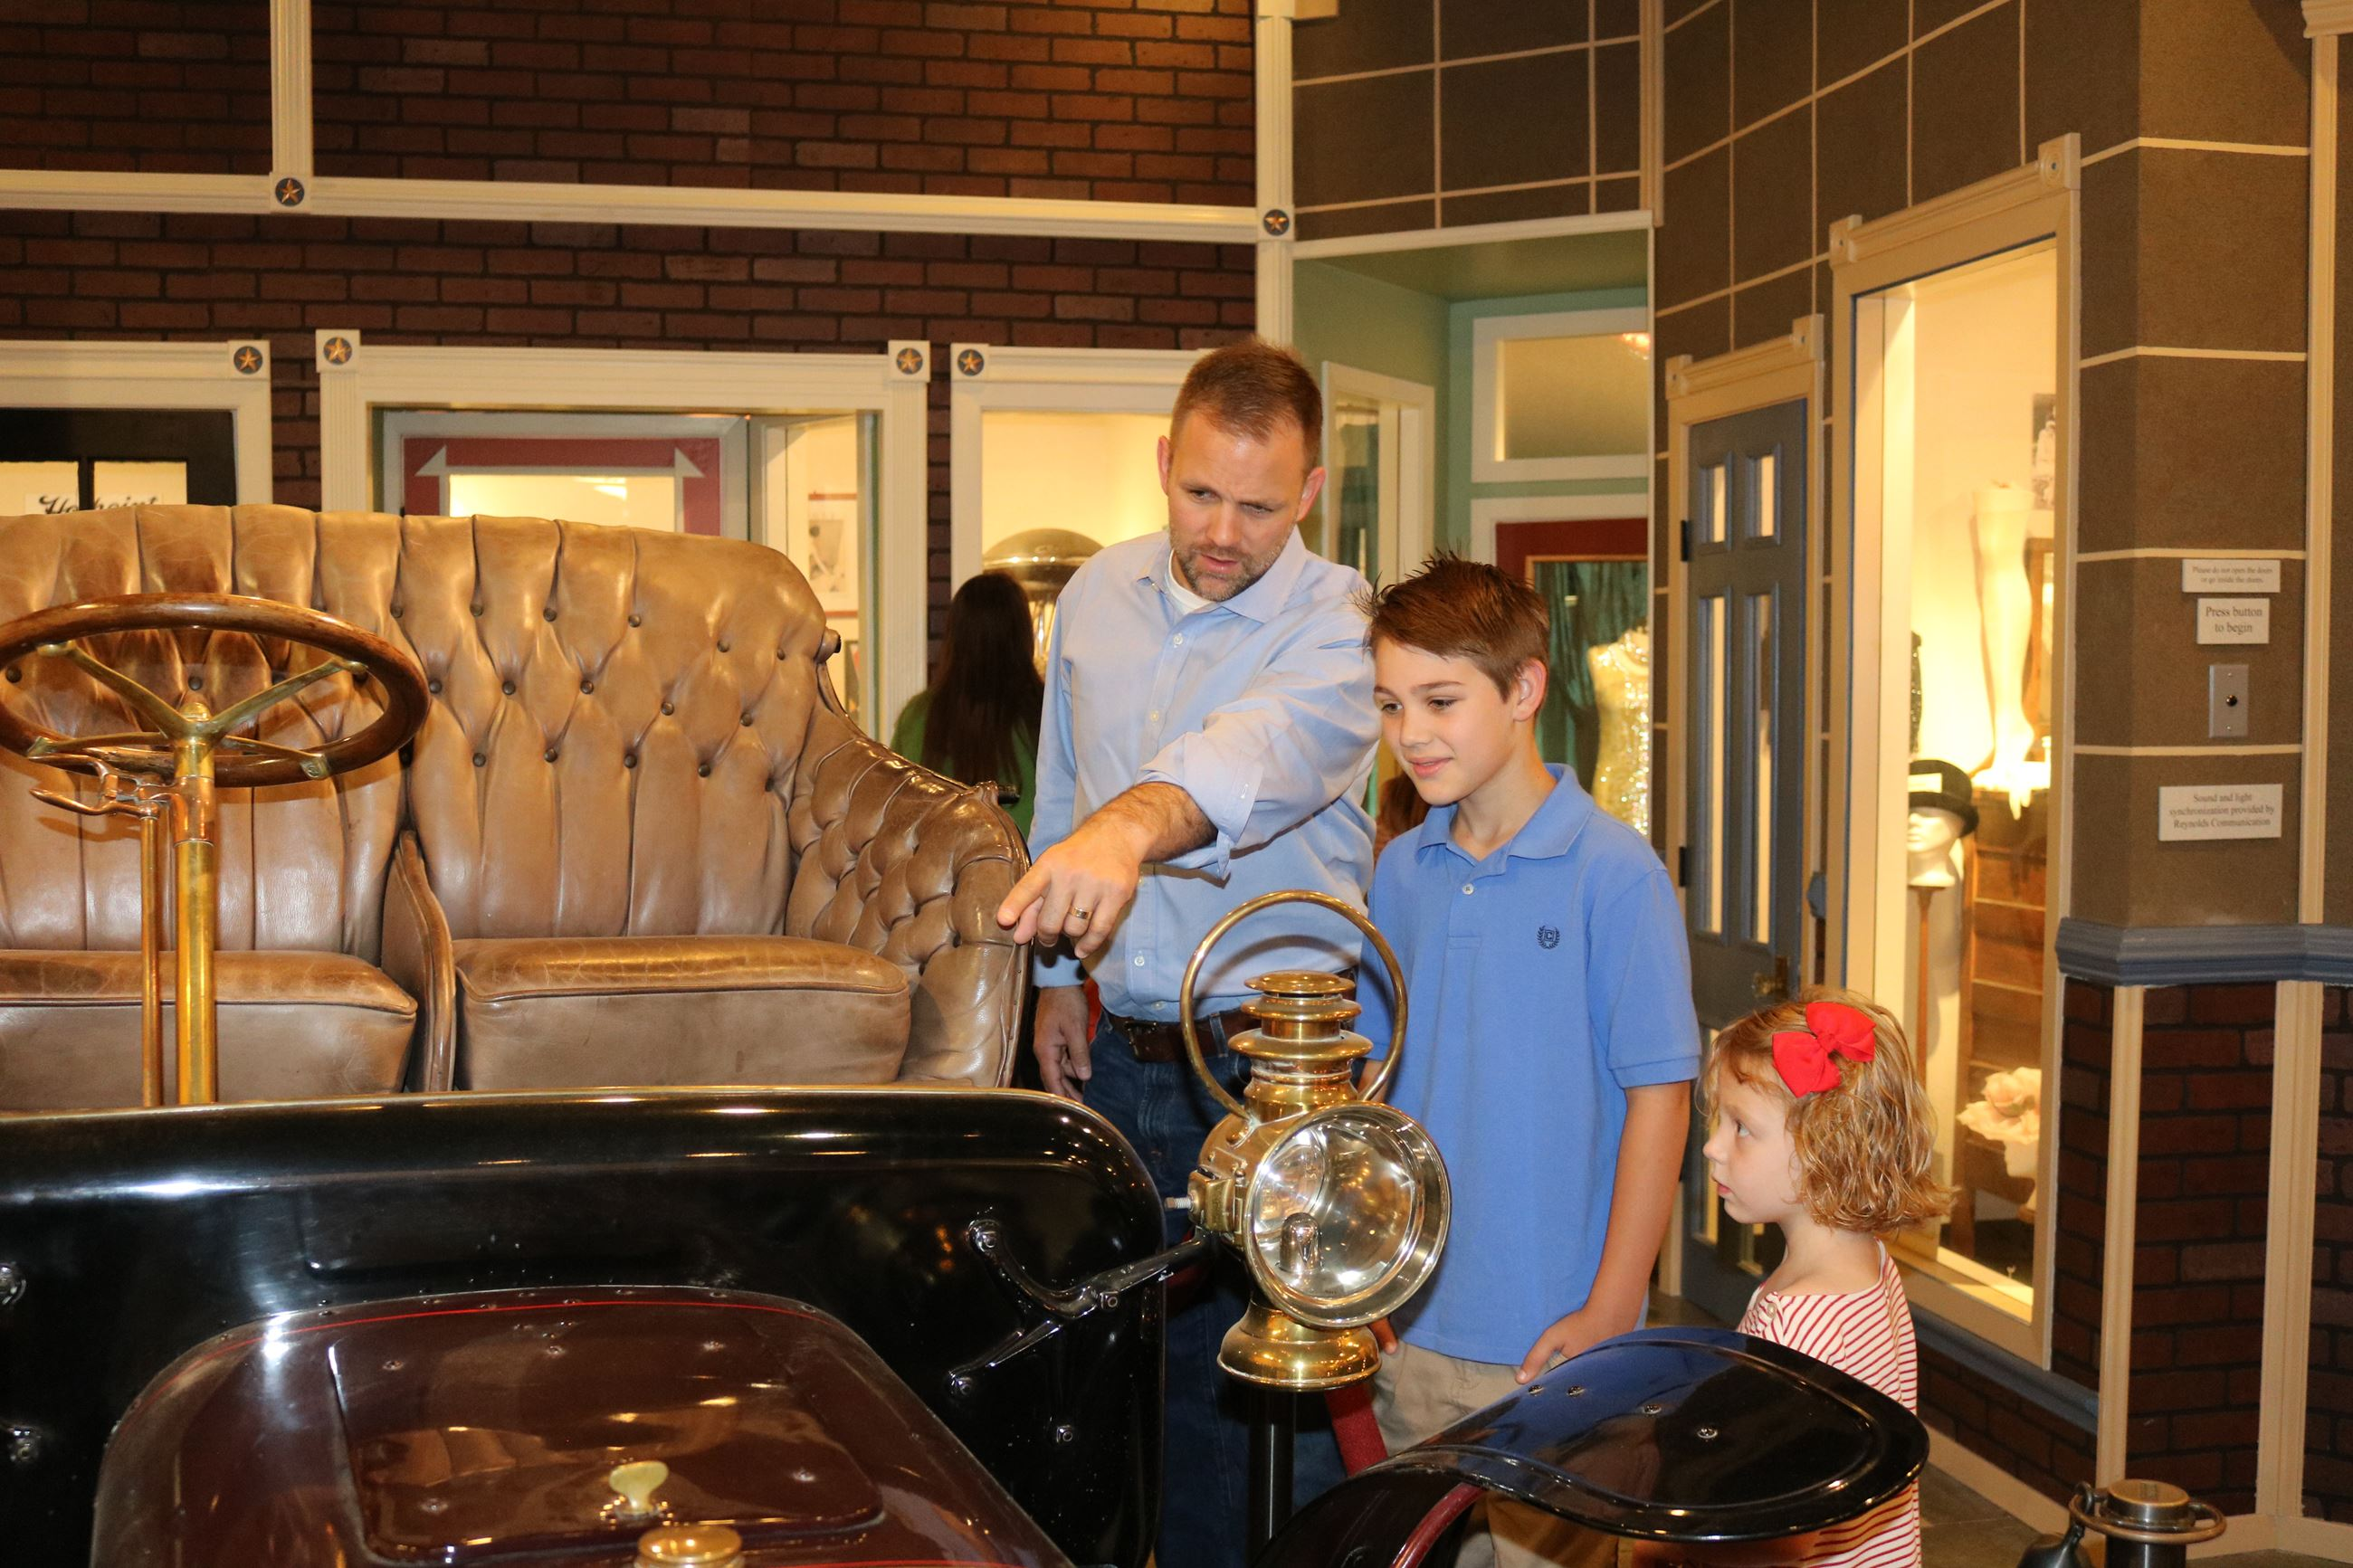 Museum, Family looking at antique car